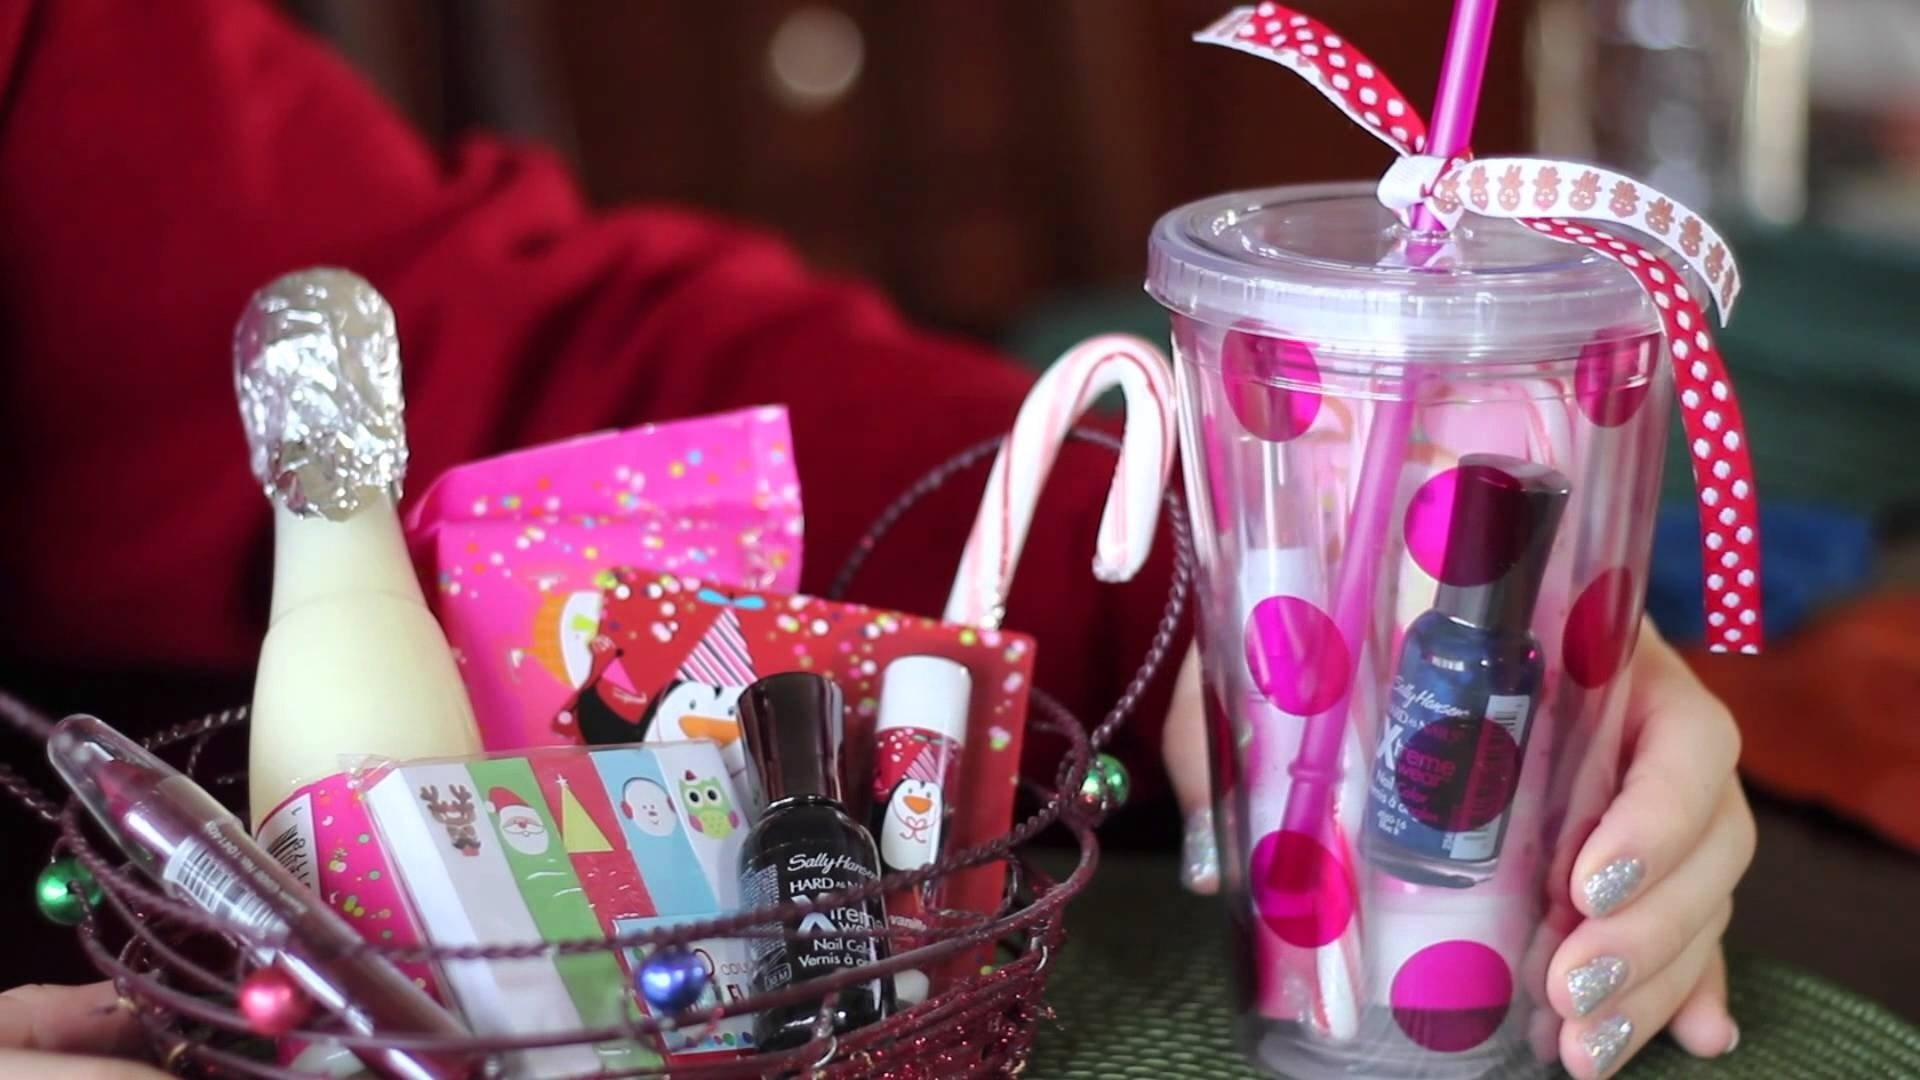 10 Awesome Small Gift Ideas For Friends cute diy gift ideas cheap easy and fun youtube 13